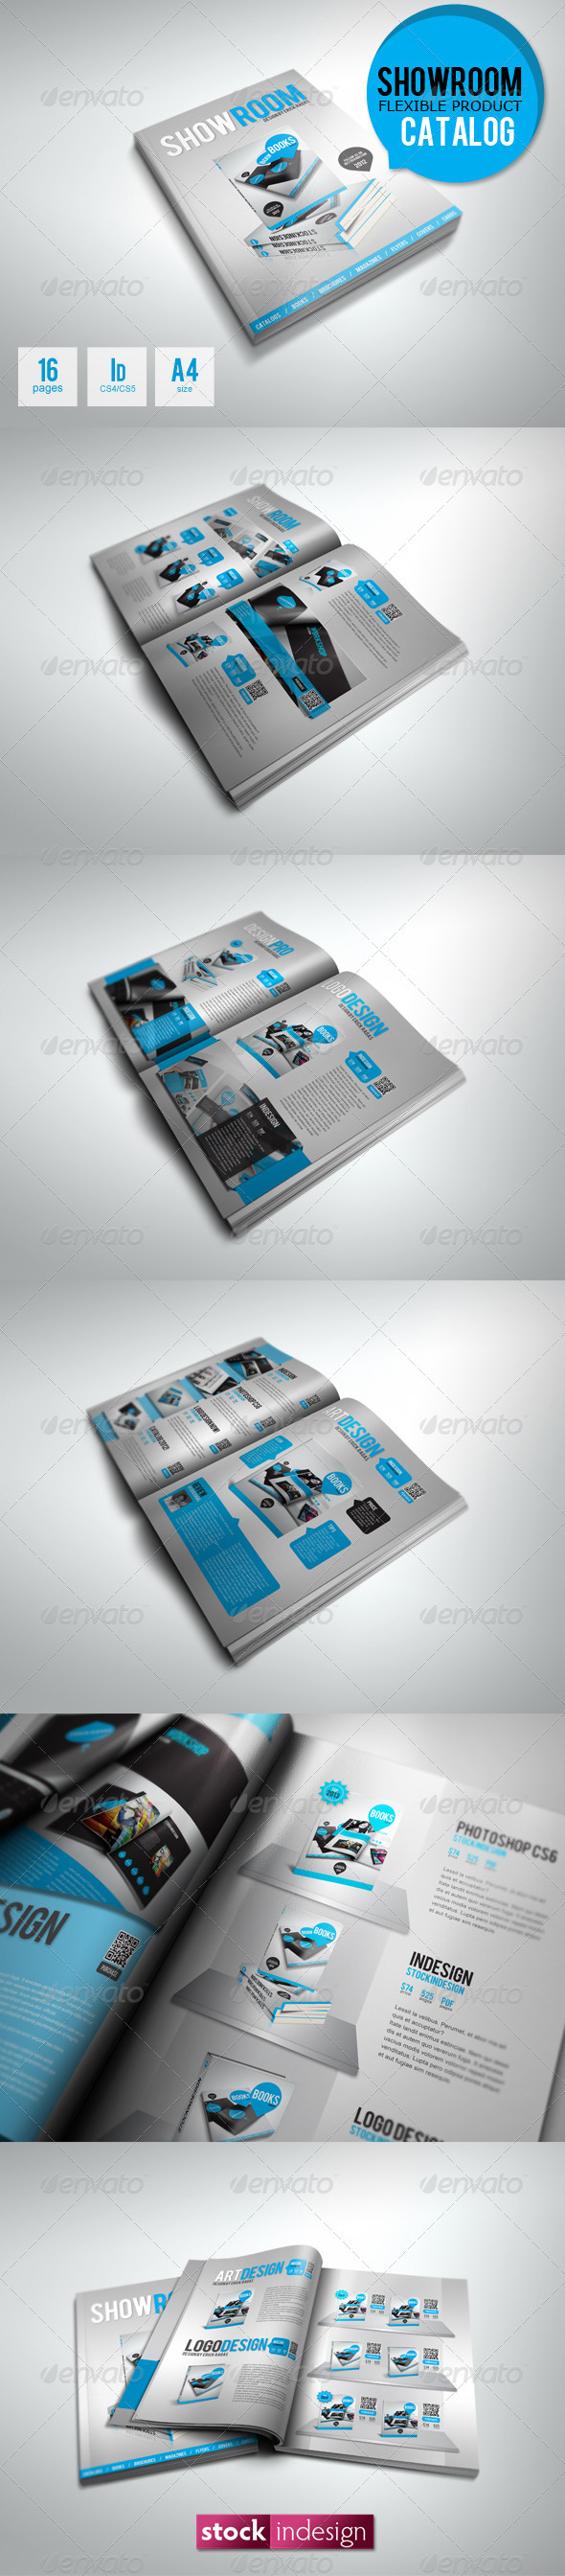 GraphicRiver ShowRoom Product Catalog Unlimited Colors 1934652